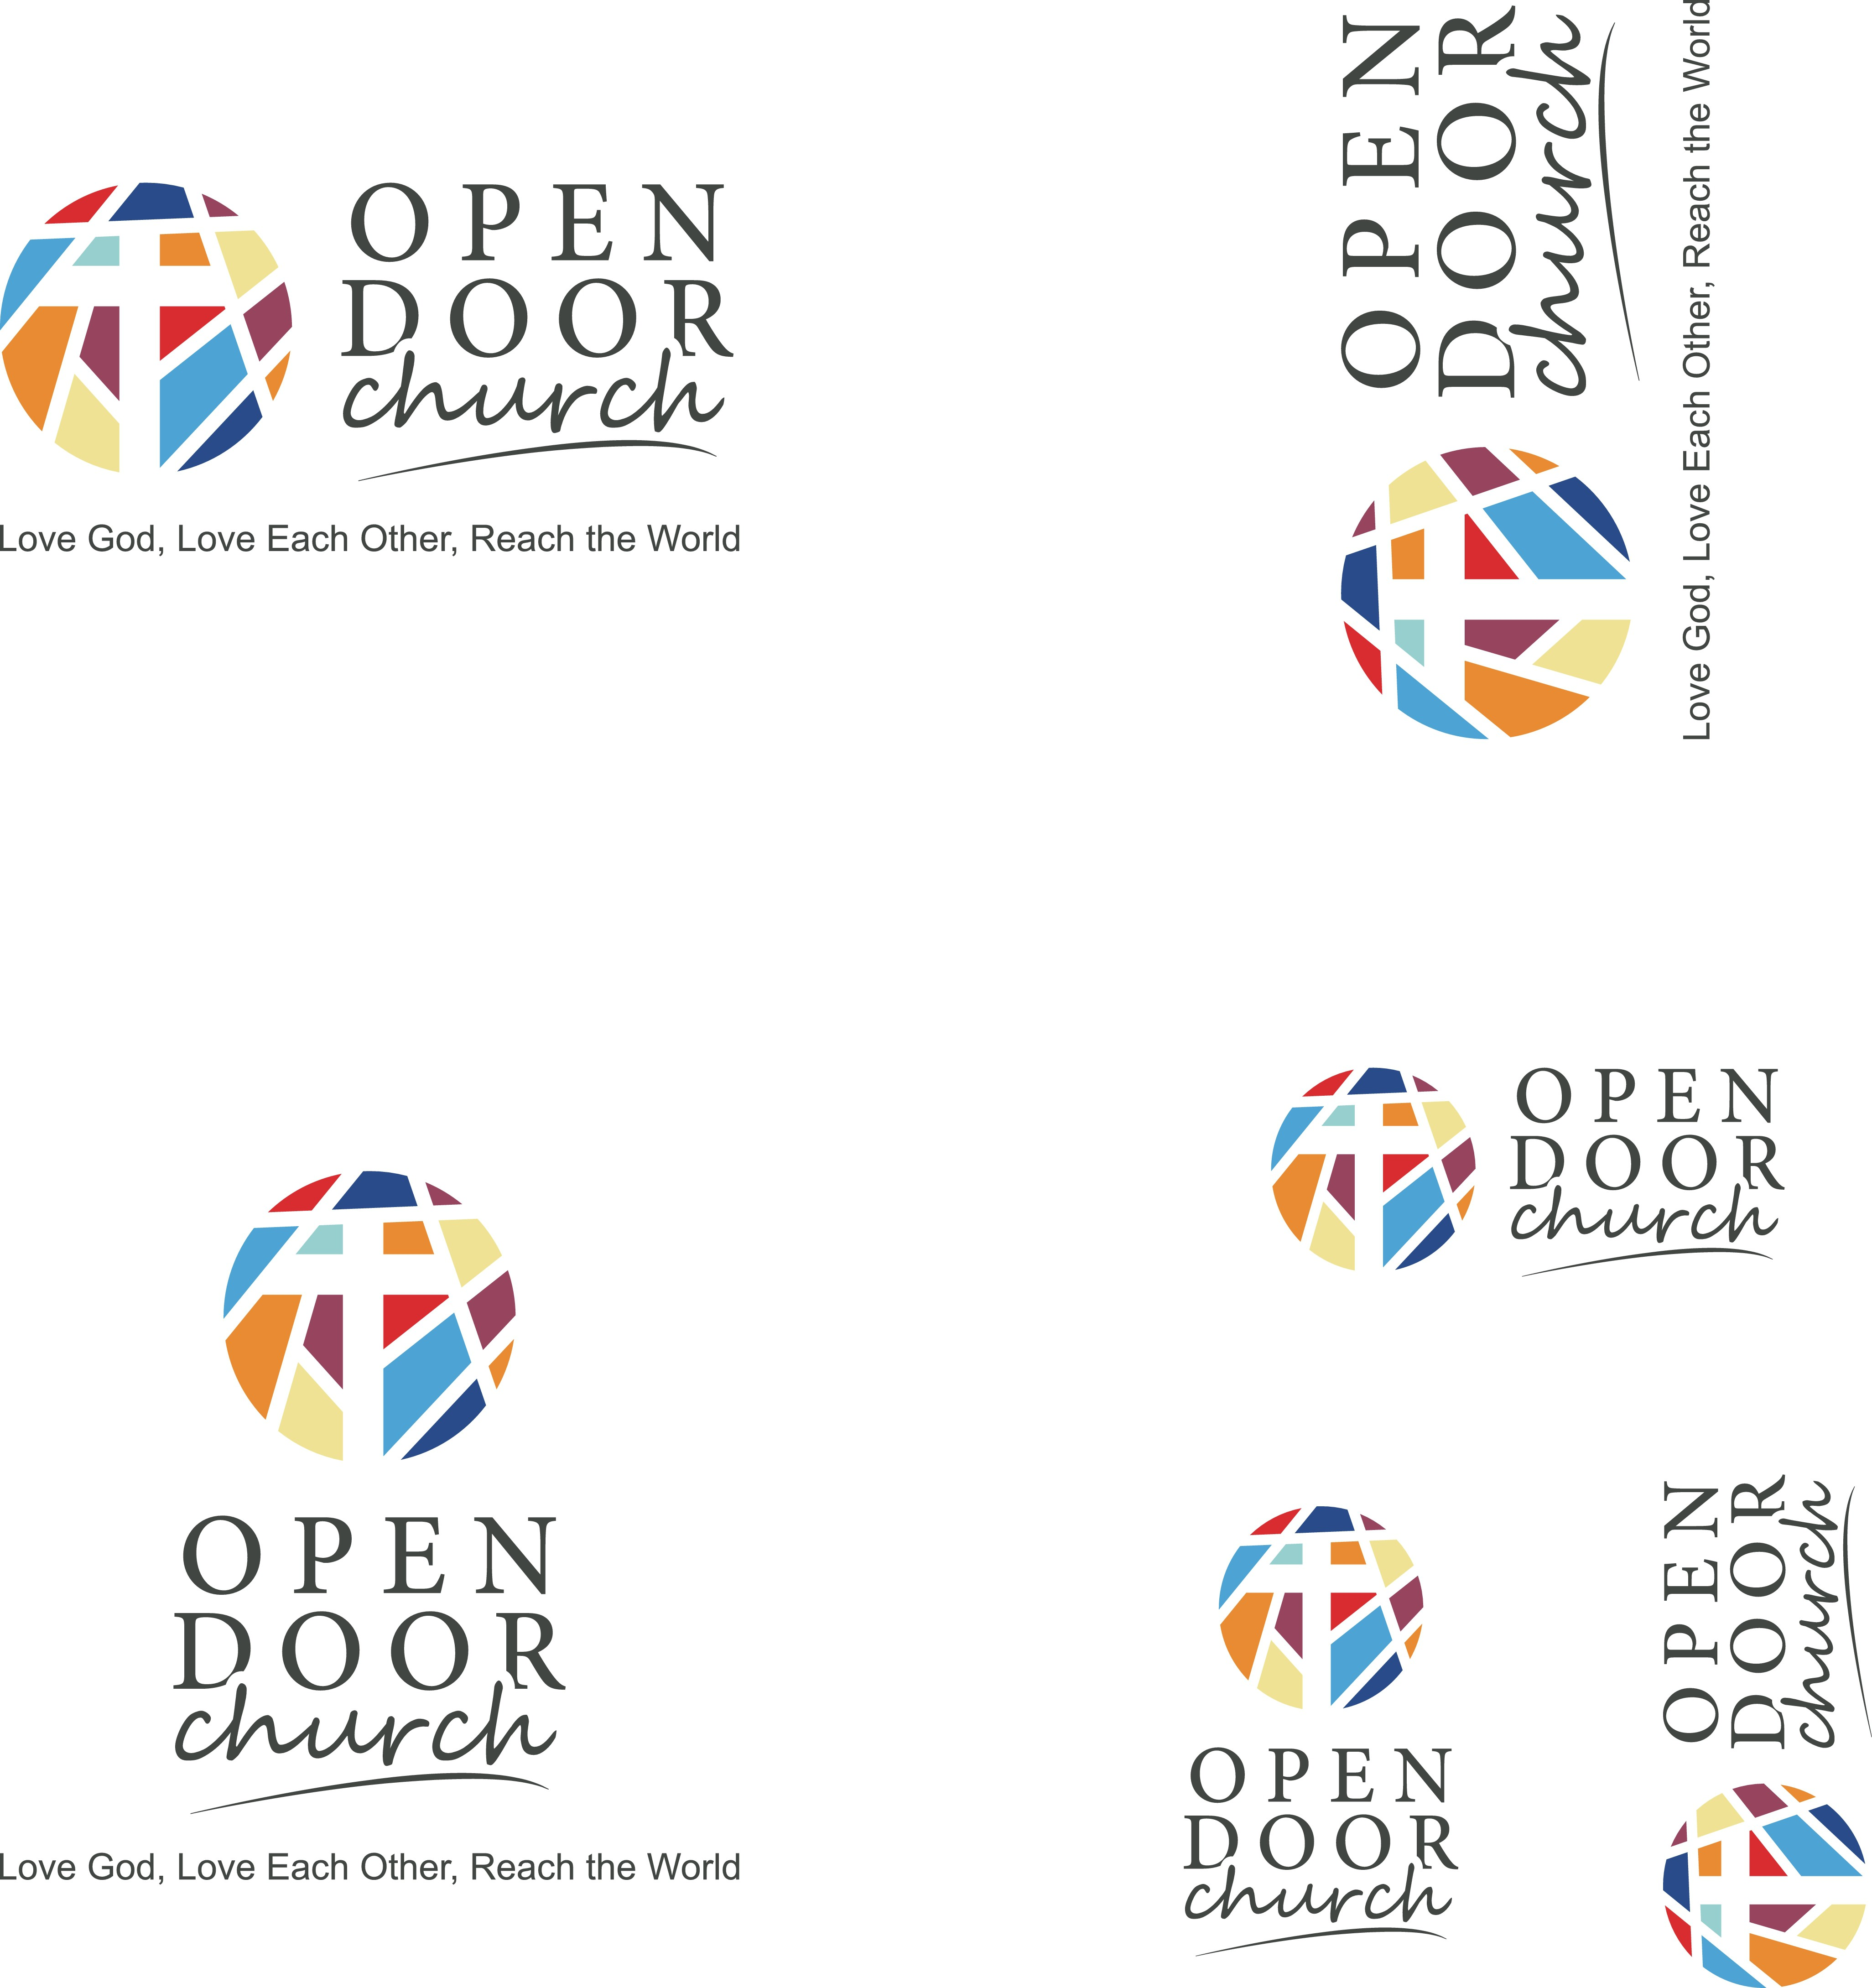 Traditional Midwest Church Seeking New Logo With a Modern Touch